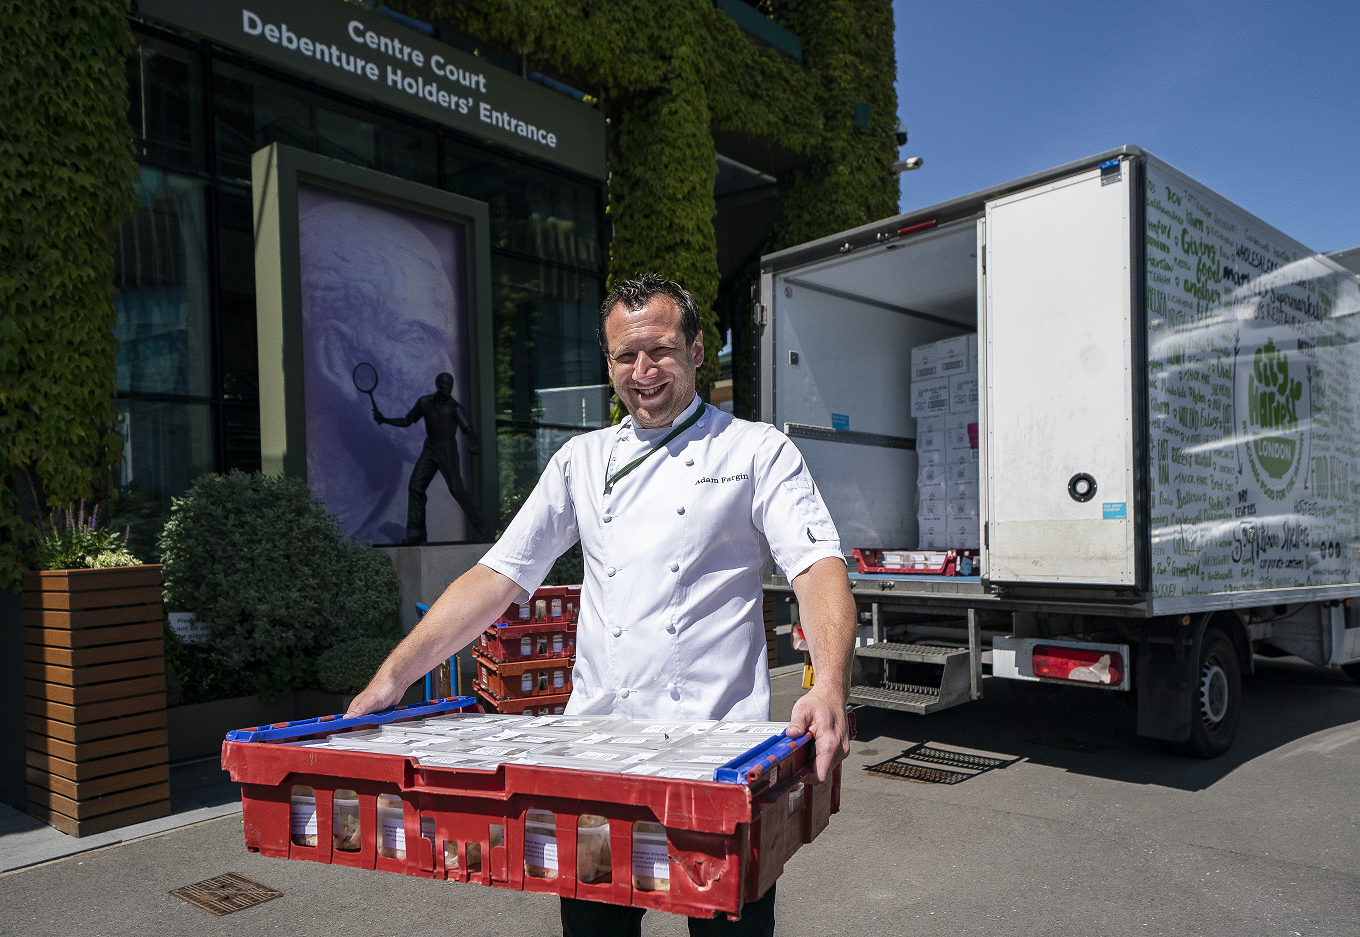 All England Lawn Tennis Club opens kitchen to provide meals to local community